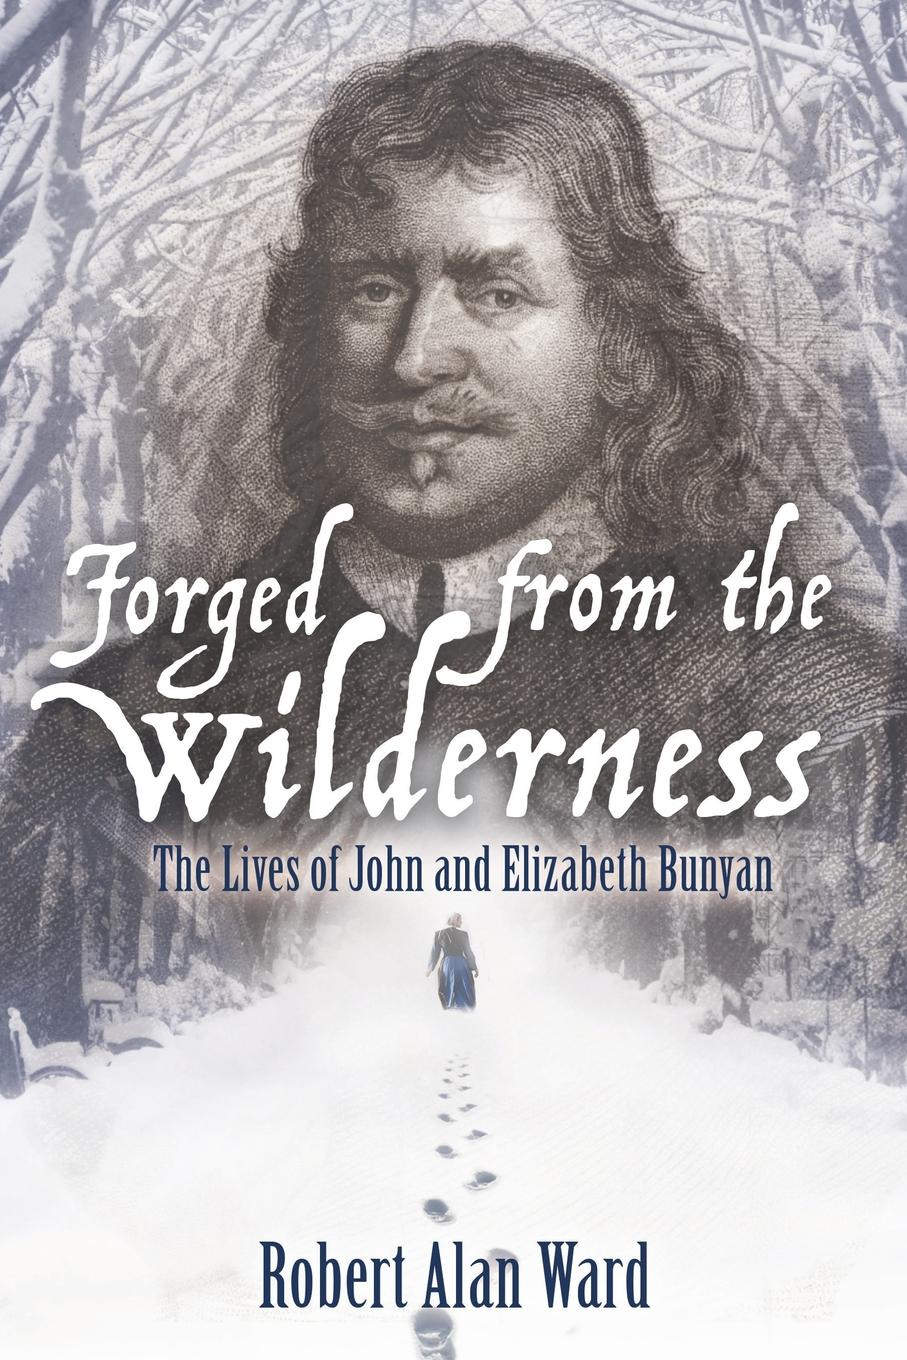 Robert Alan Ward Forged from the Wilderness. The Lives of John and Elizabeth Bunyan john thompson b merchants of culture the publishing business in the twenty first century